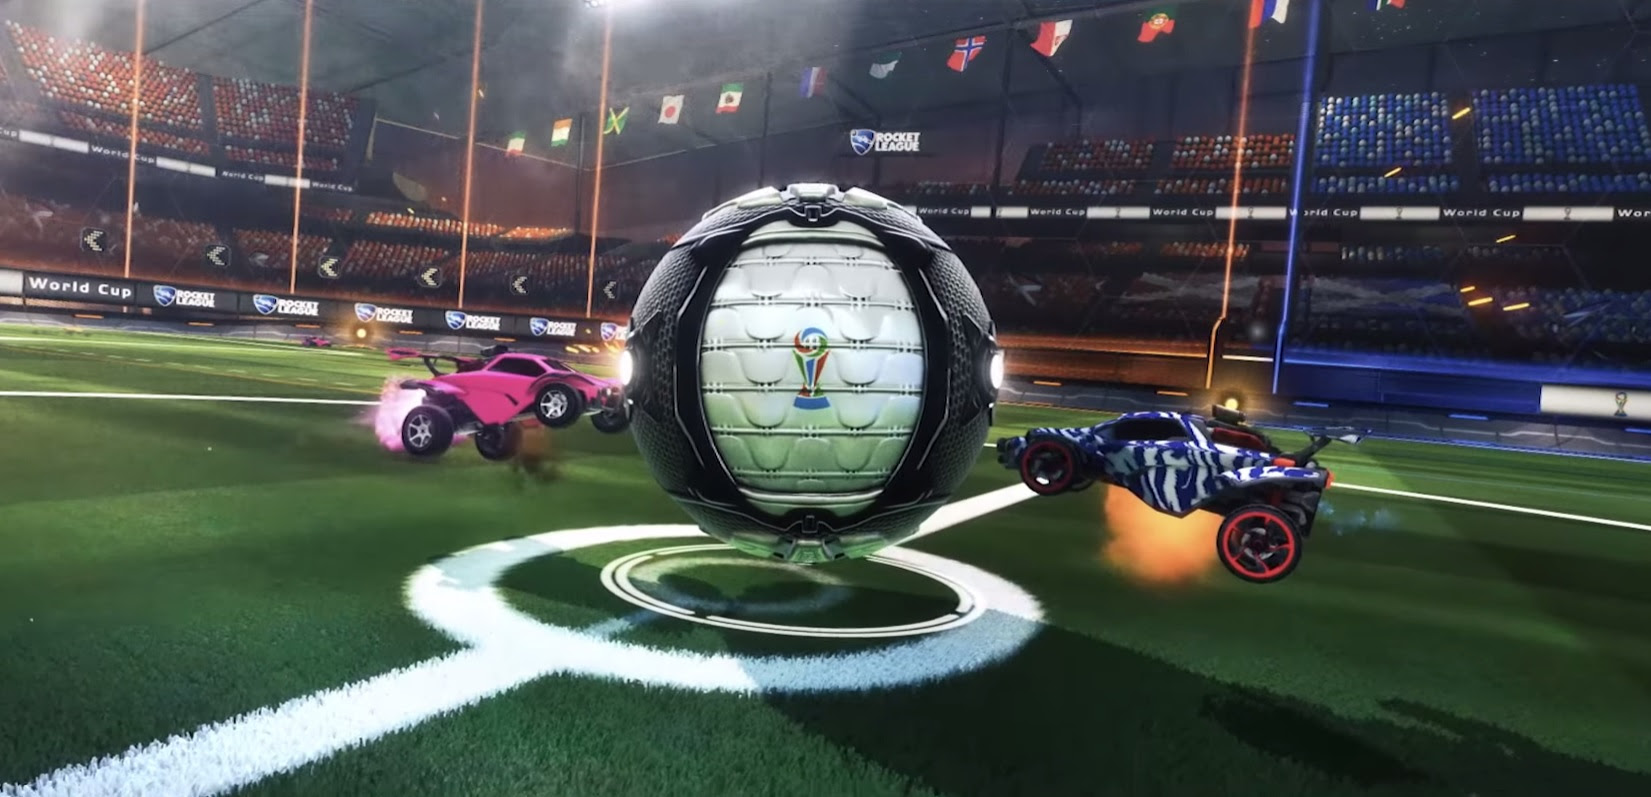 Rocket League players fight for national pride in the game's first ever World Cup screenshot